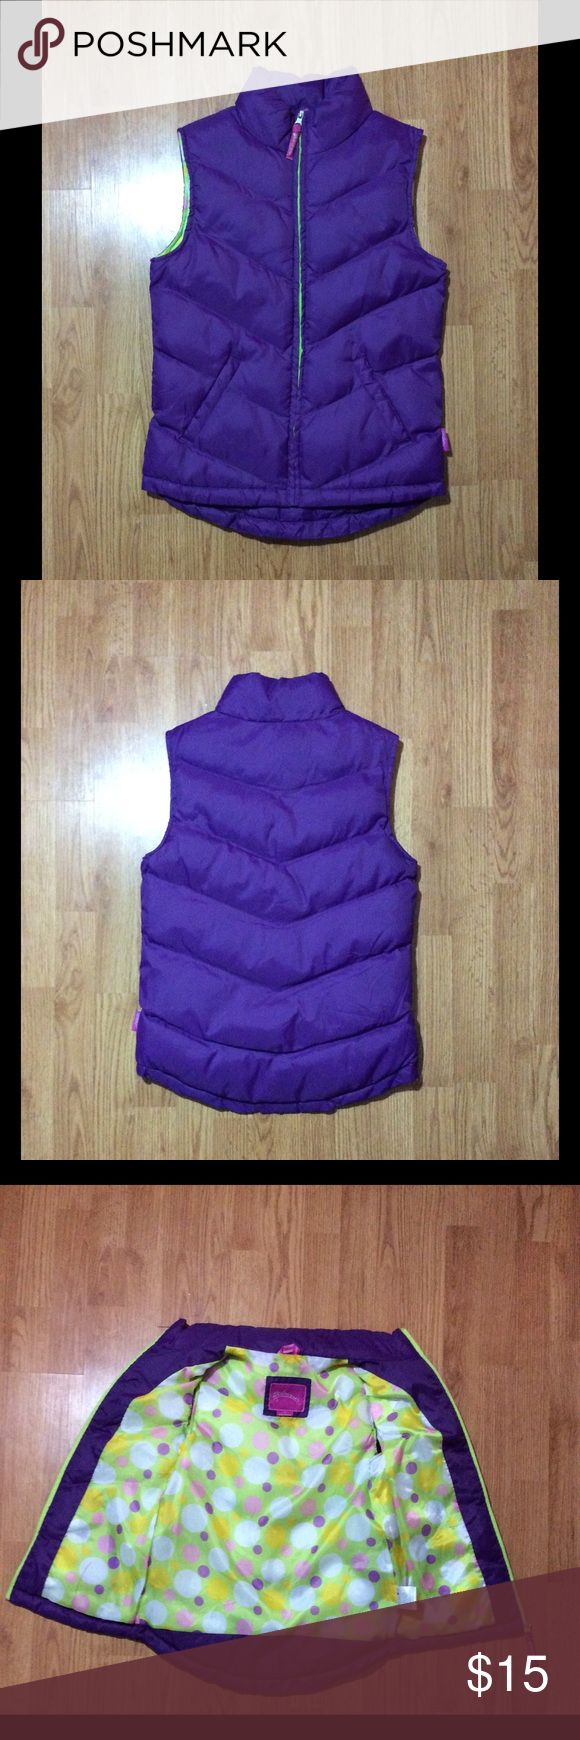 Juniors purple vest size M Purple vest for juniors from weatherproof. Size M.  New without tags but in great condition!!  I normally ship the same day or the day after!! waterproof Jackets & Coats Vests